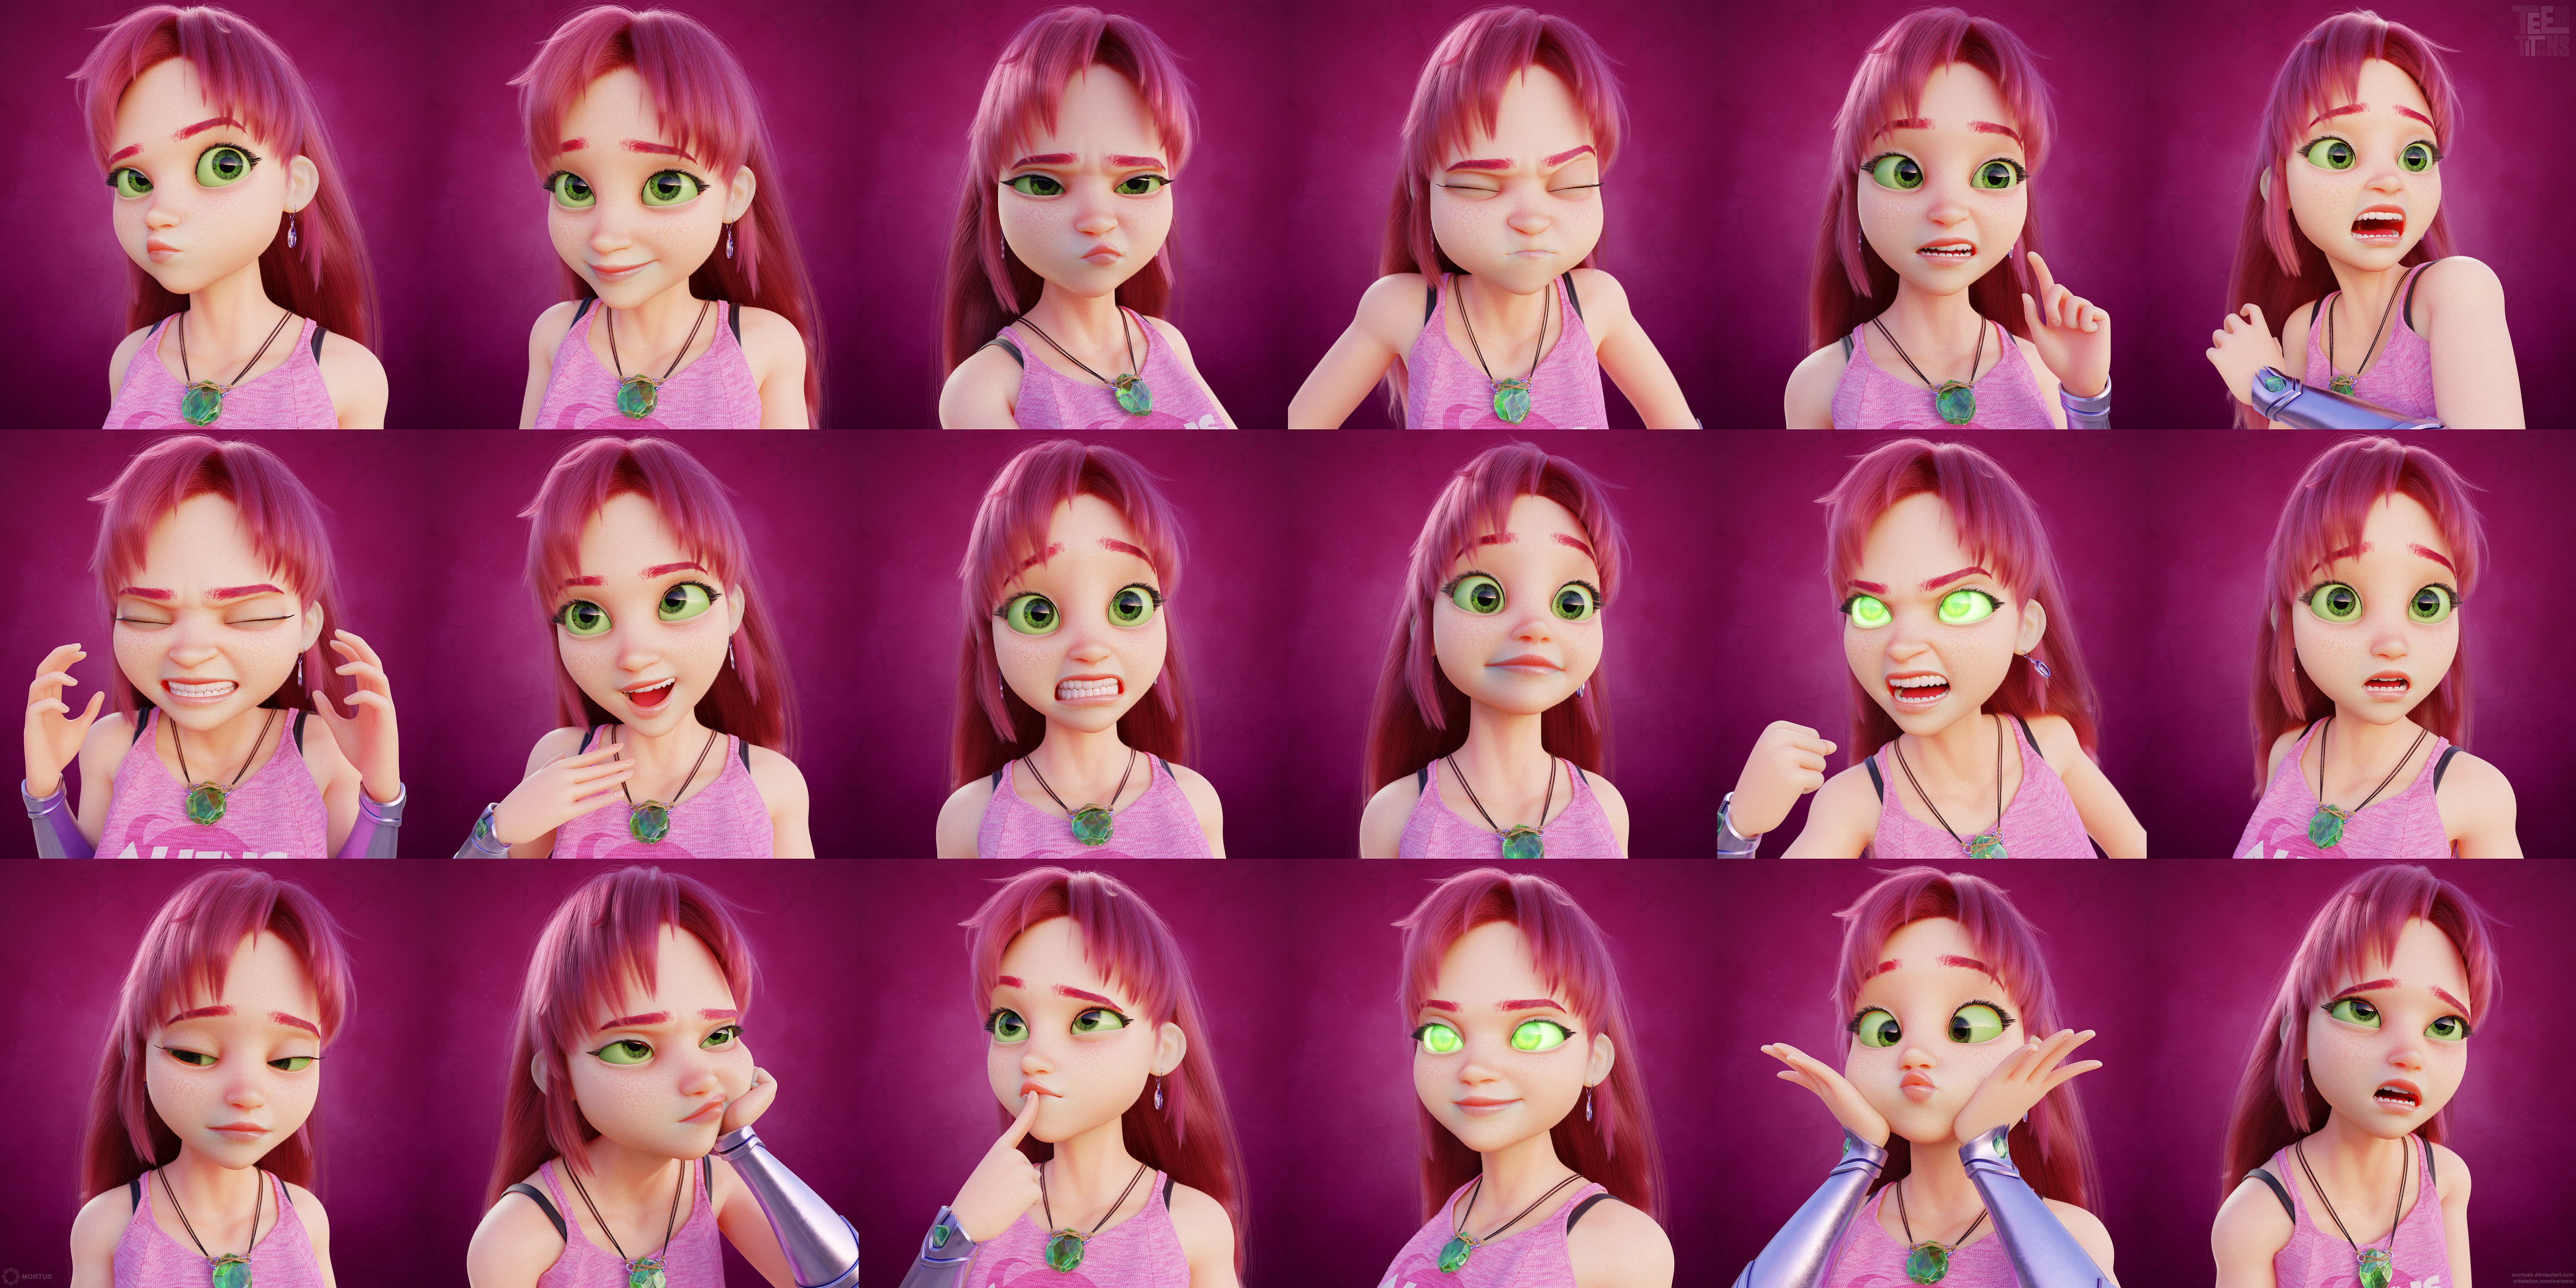 Starfire facial expressions